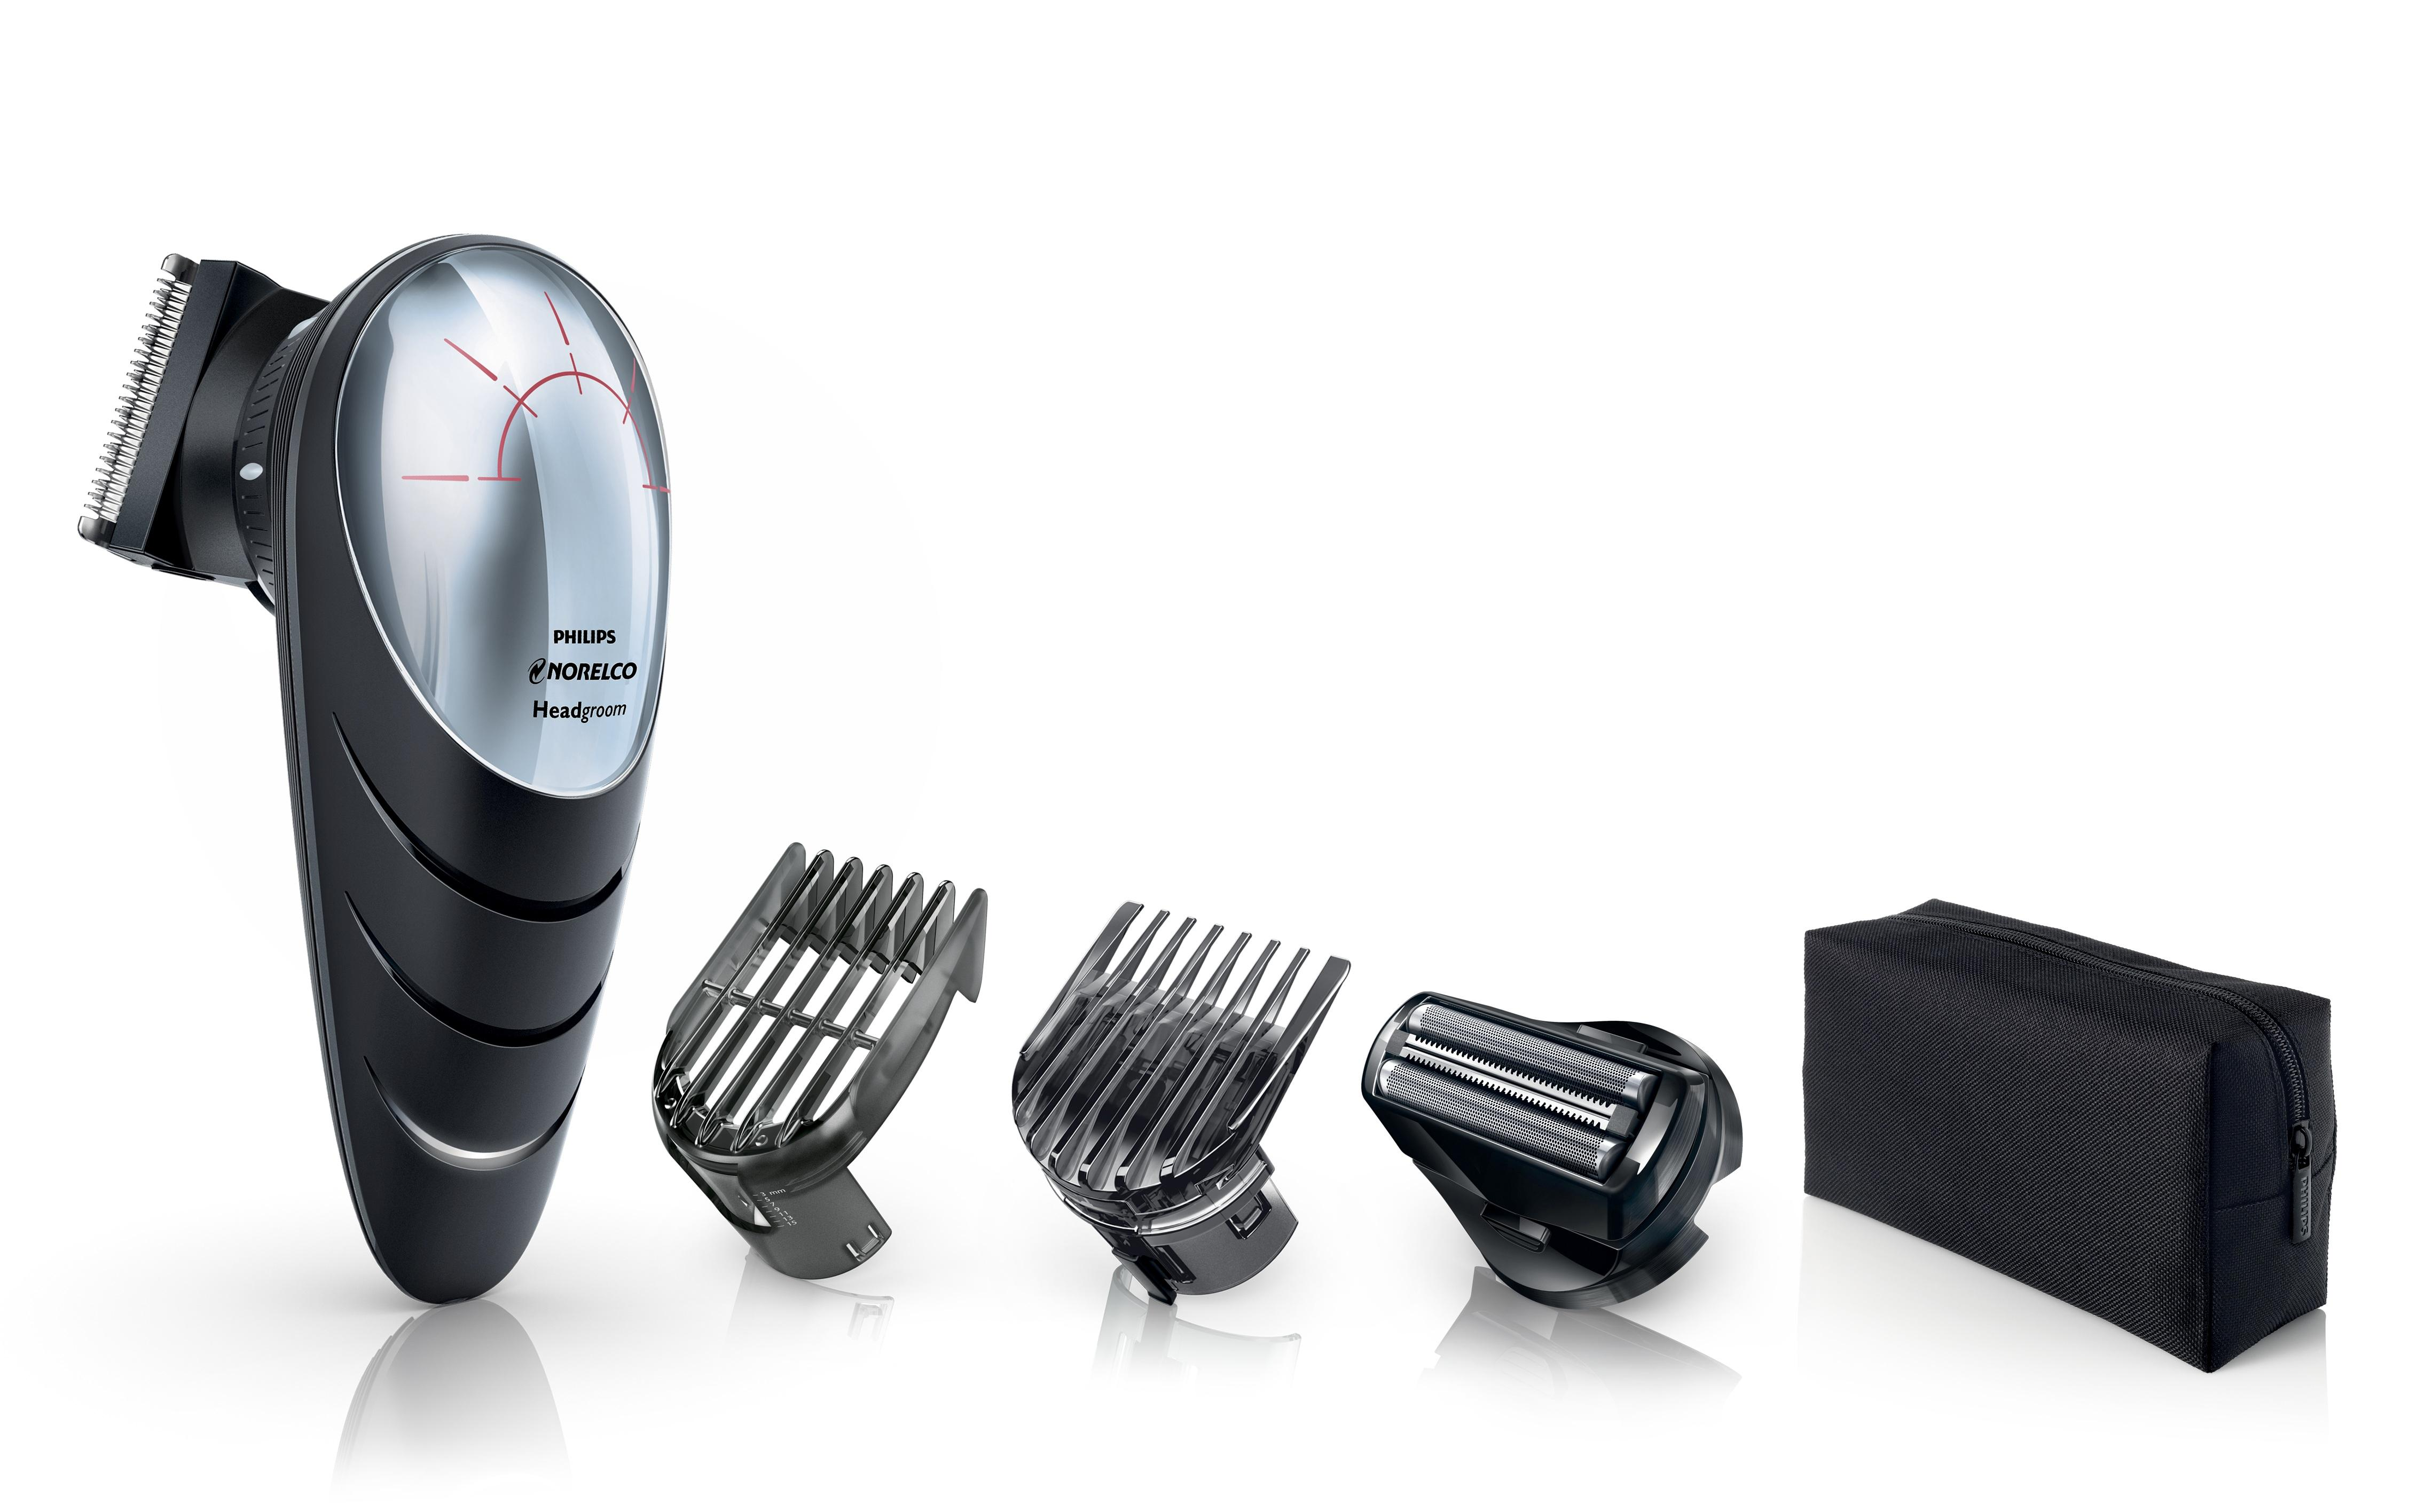 Philips Norelco Do-it-Yourself Hair Clippers with Head Shaver